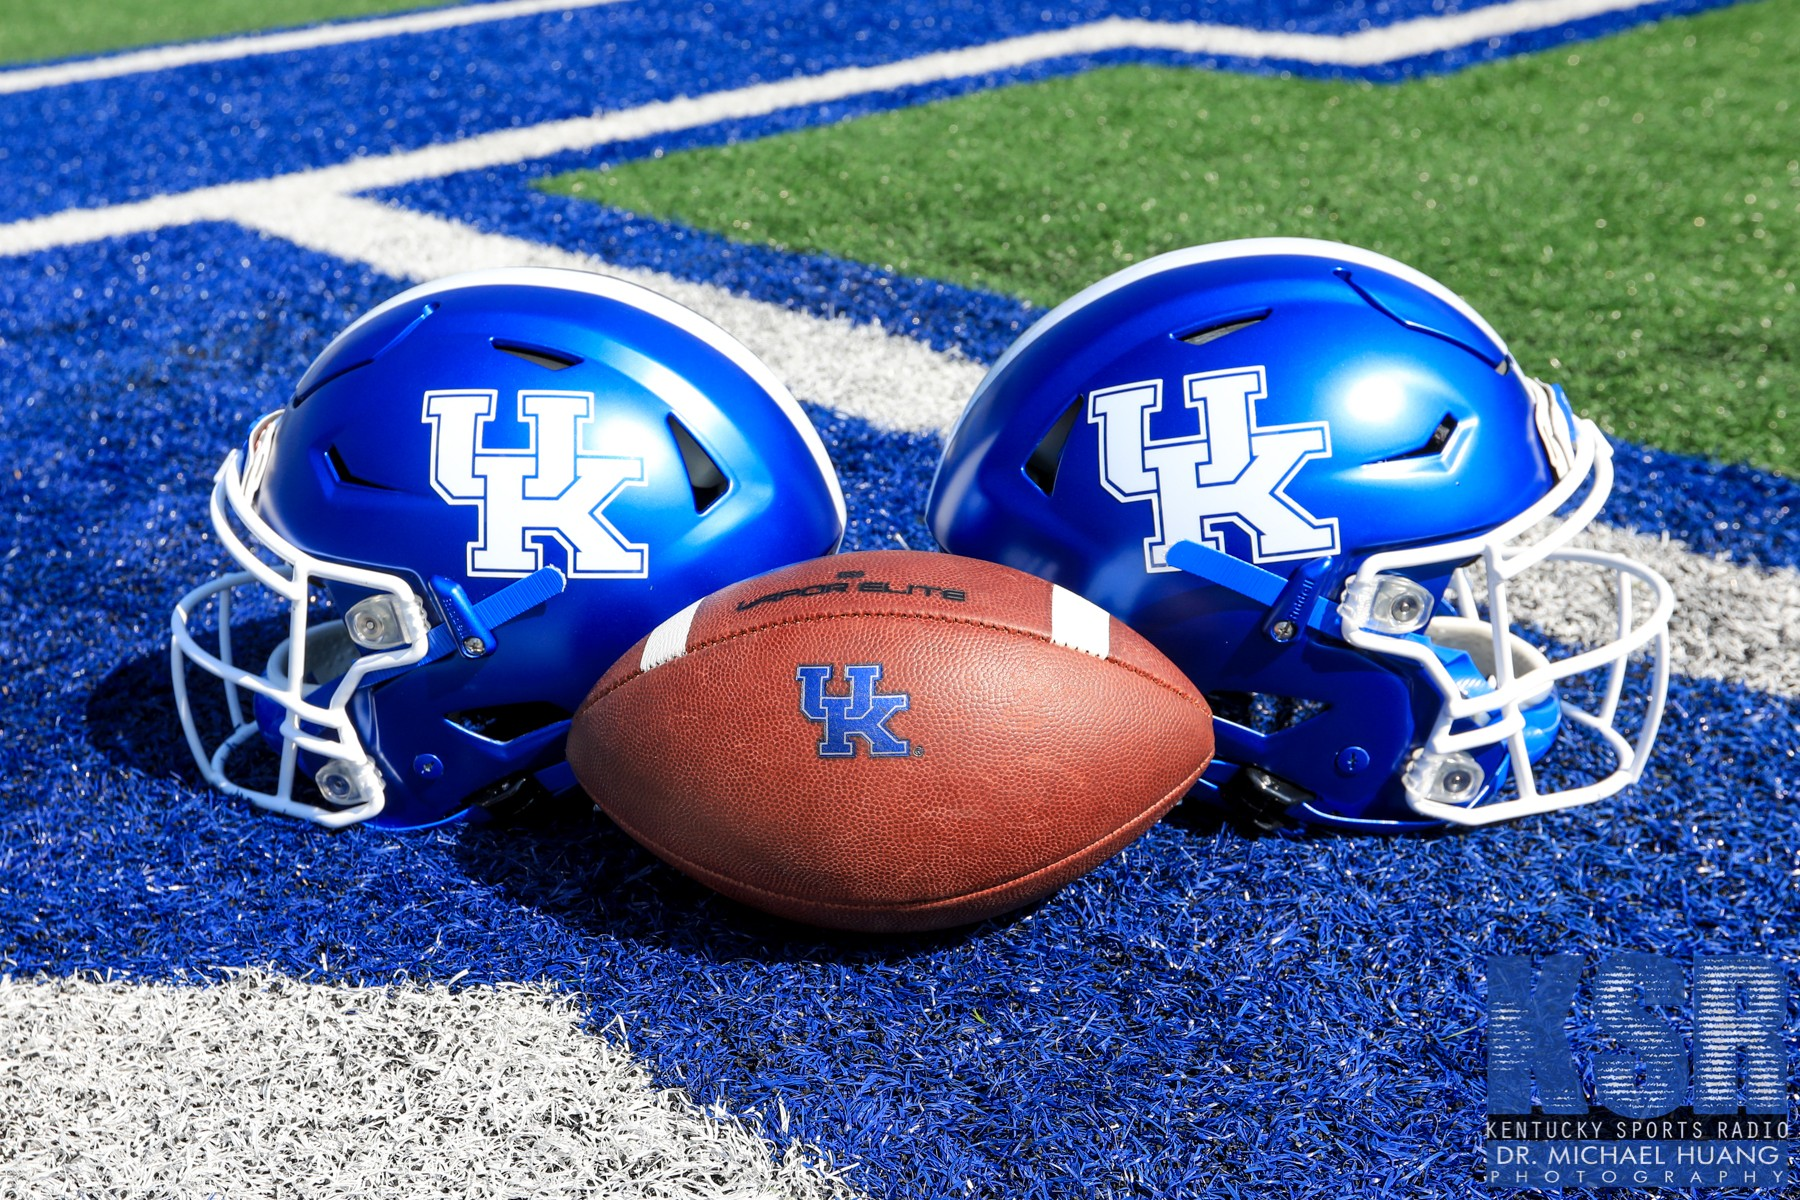 Kentucky's 2020 football schedule released